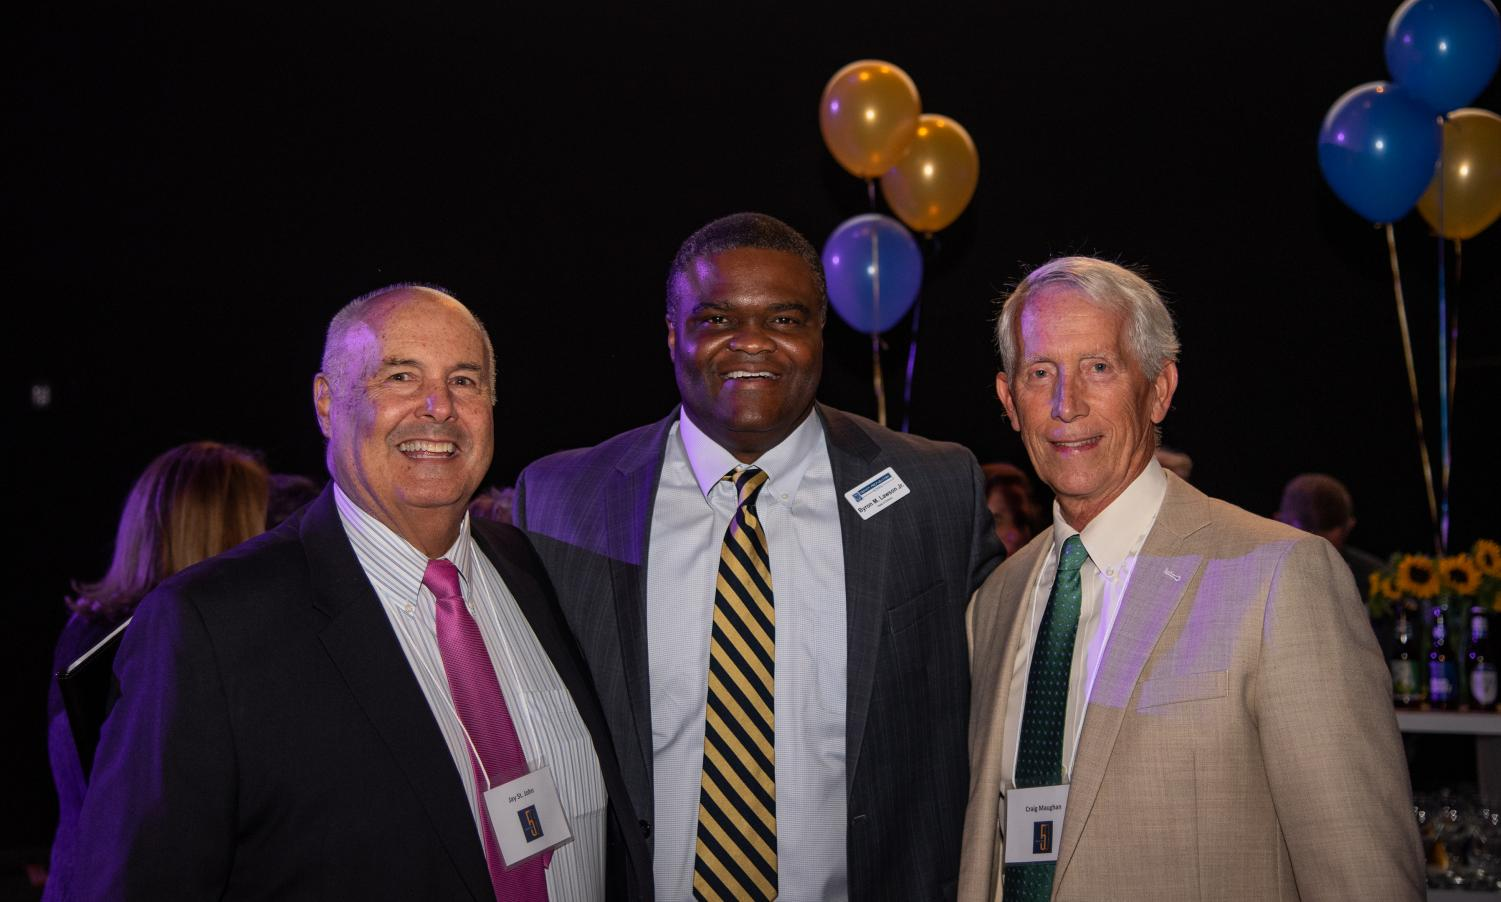 Jay St. John, Byron Lawson and Craig Maughan all attended the Golden Jubilee. In a video shown at the program, the three of them shared their thoughts about Trinity's growth throughout the years.